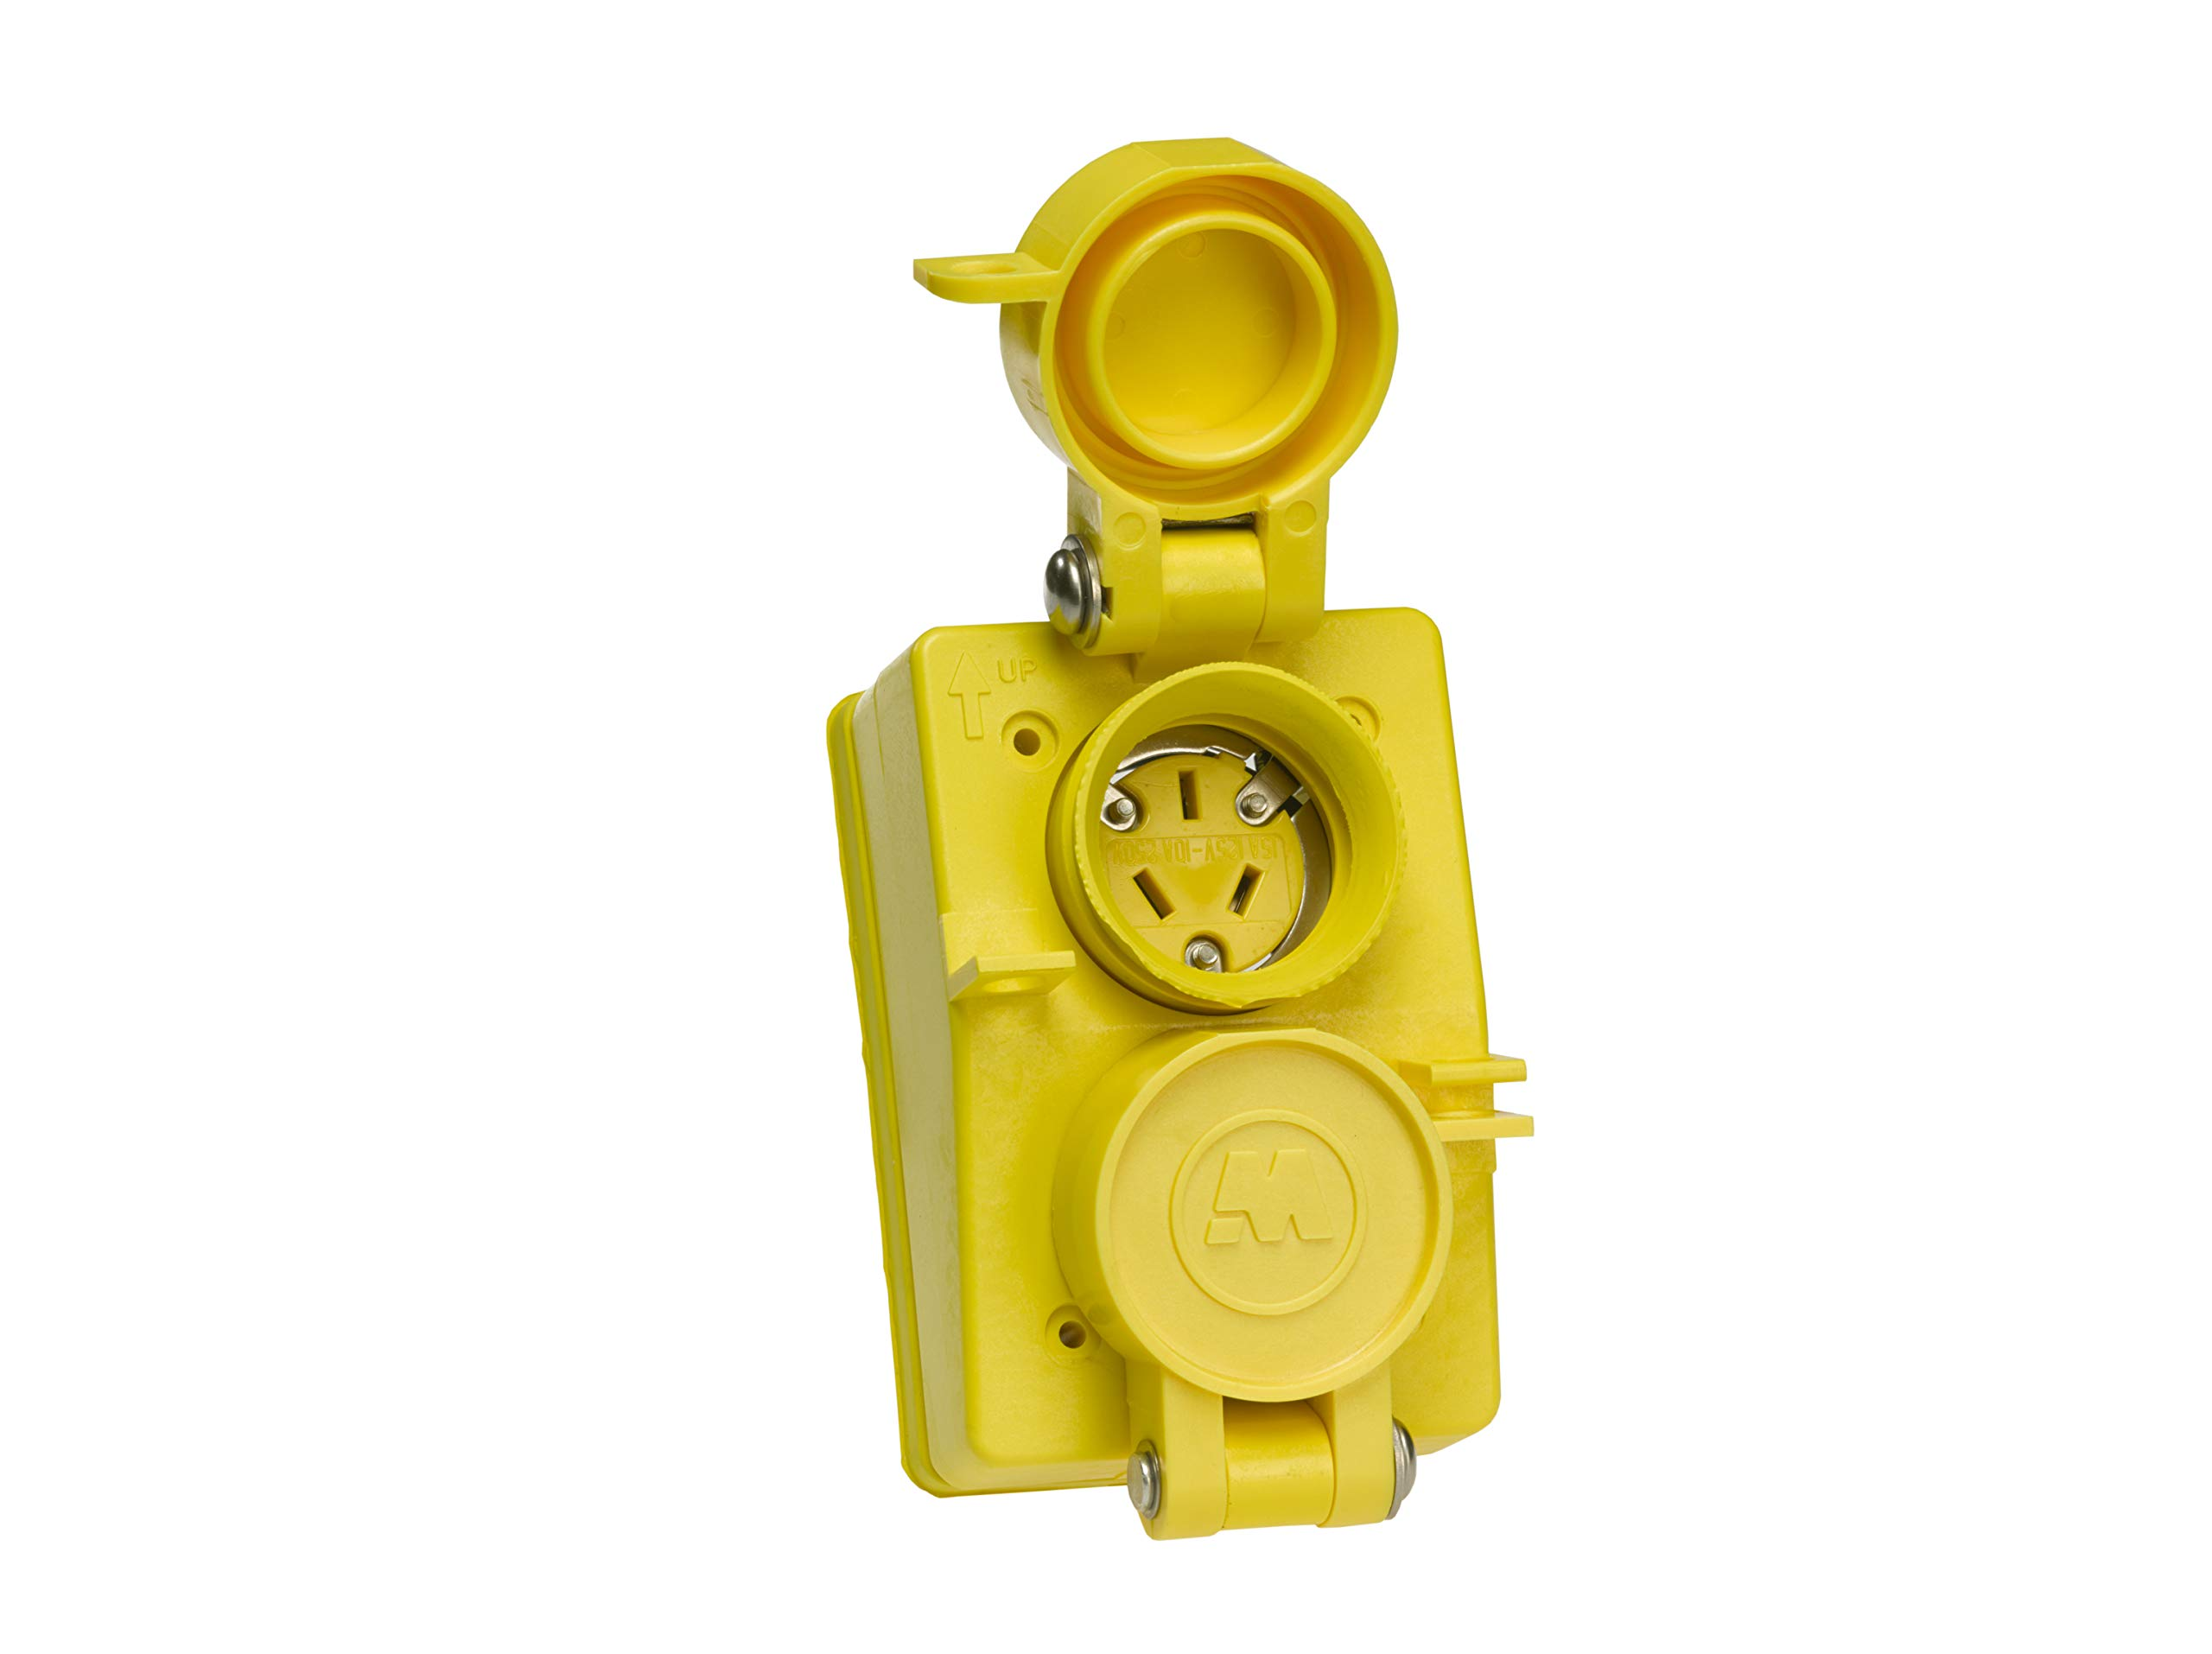 Woodhead 60W07DPLX Watertite Wet Location Straight Blade Receptacle, Duplex Flip Lid, Female, 3 Wires, 3 Poles, Yellow, 25A 125V / 10A 250V Rating by Woodhead (Image #2)